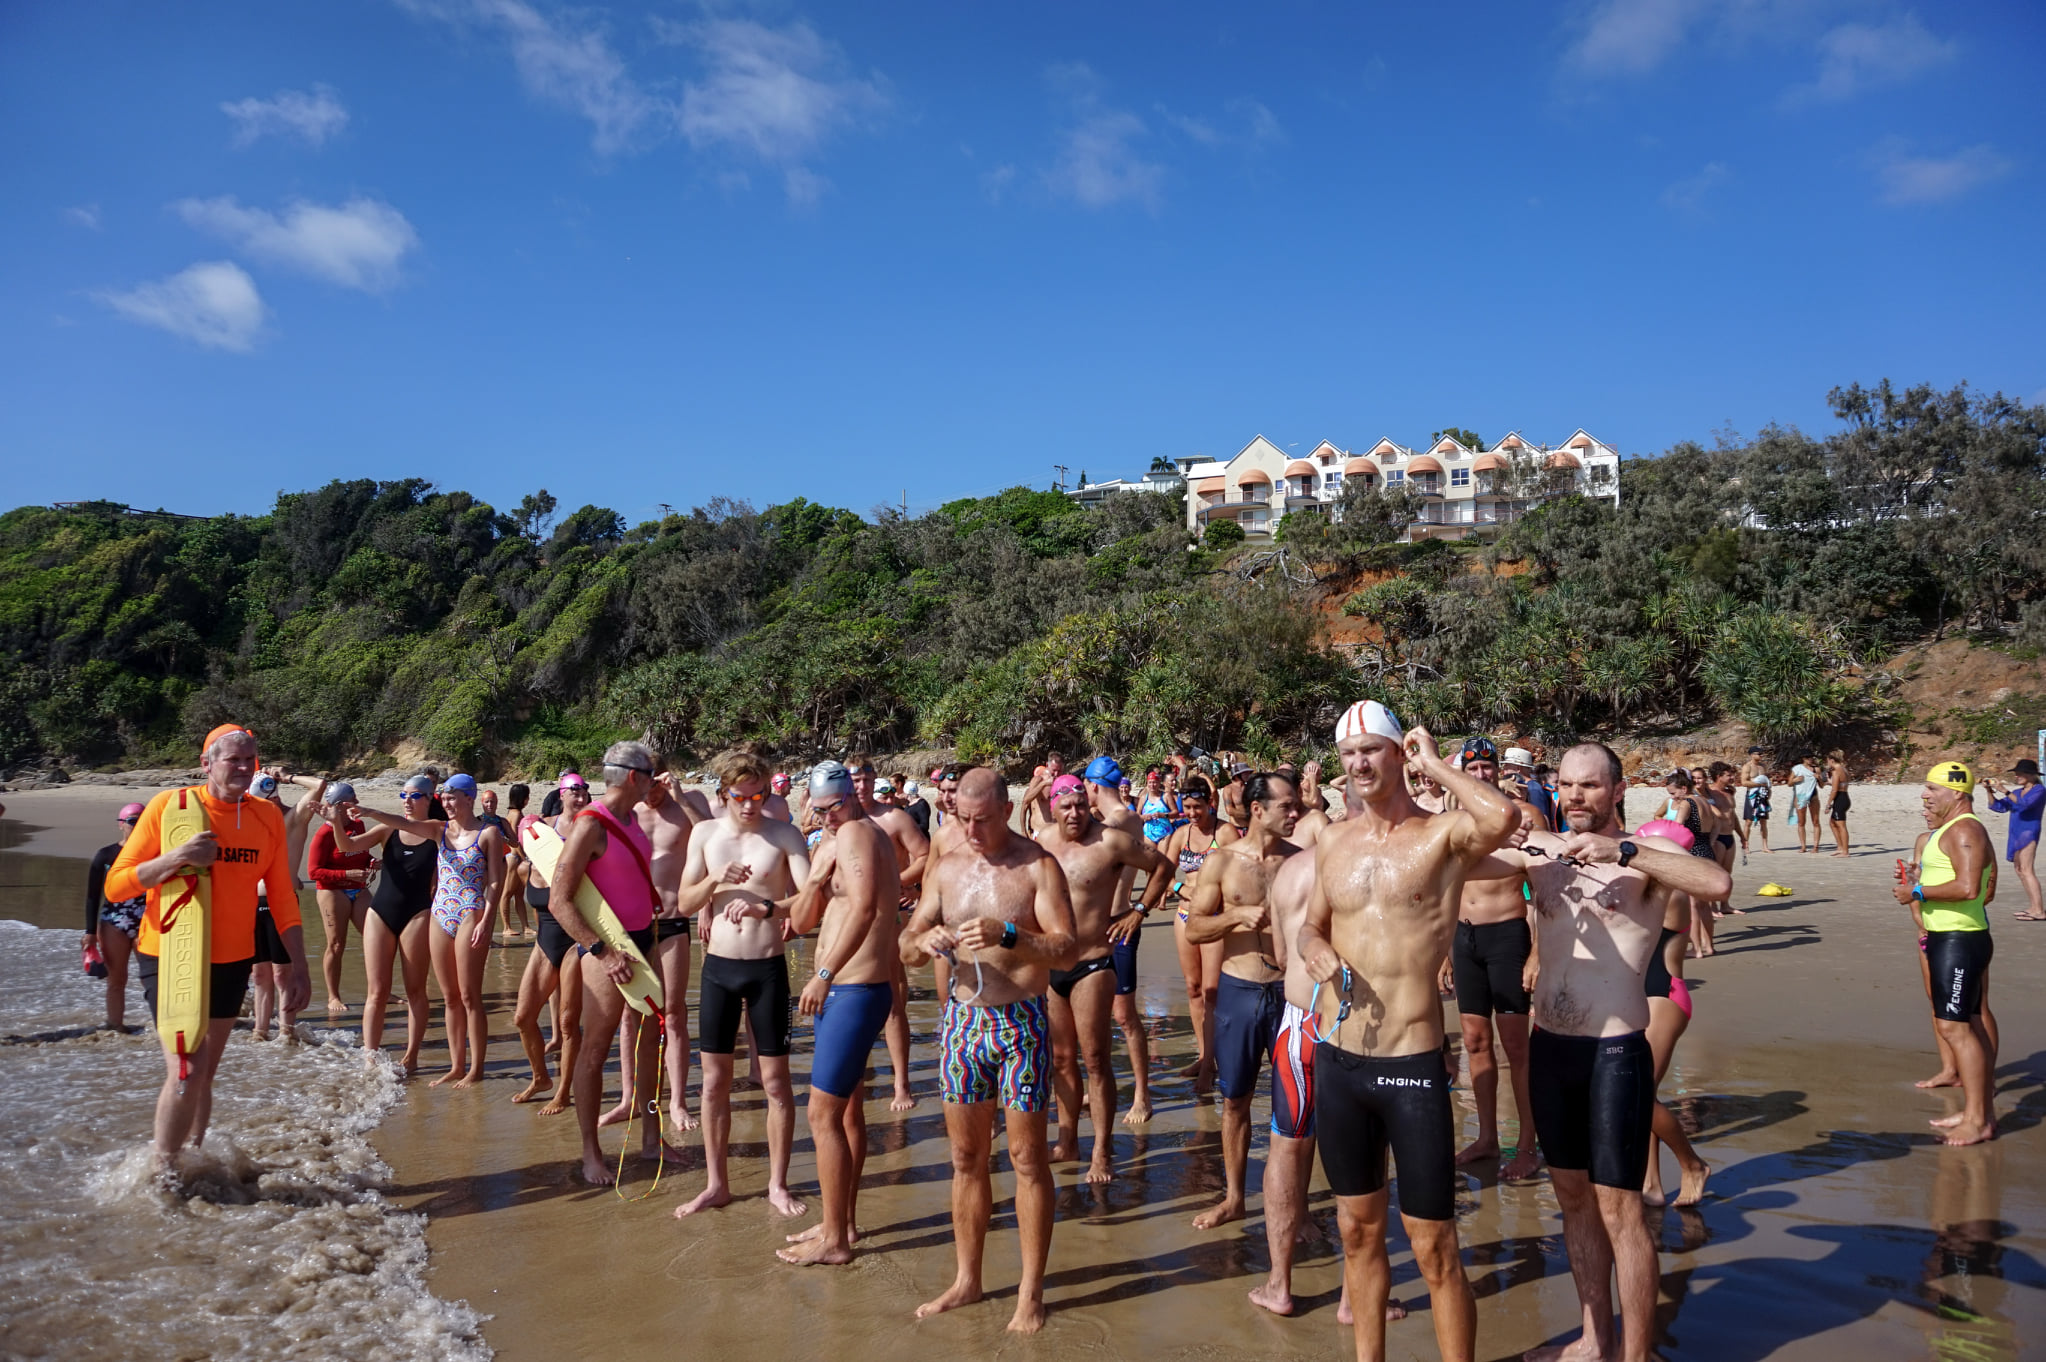 Contestants in the inaugural First Bay to Main Beach, Coolum, ocean swim event held in December 2020